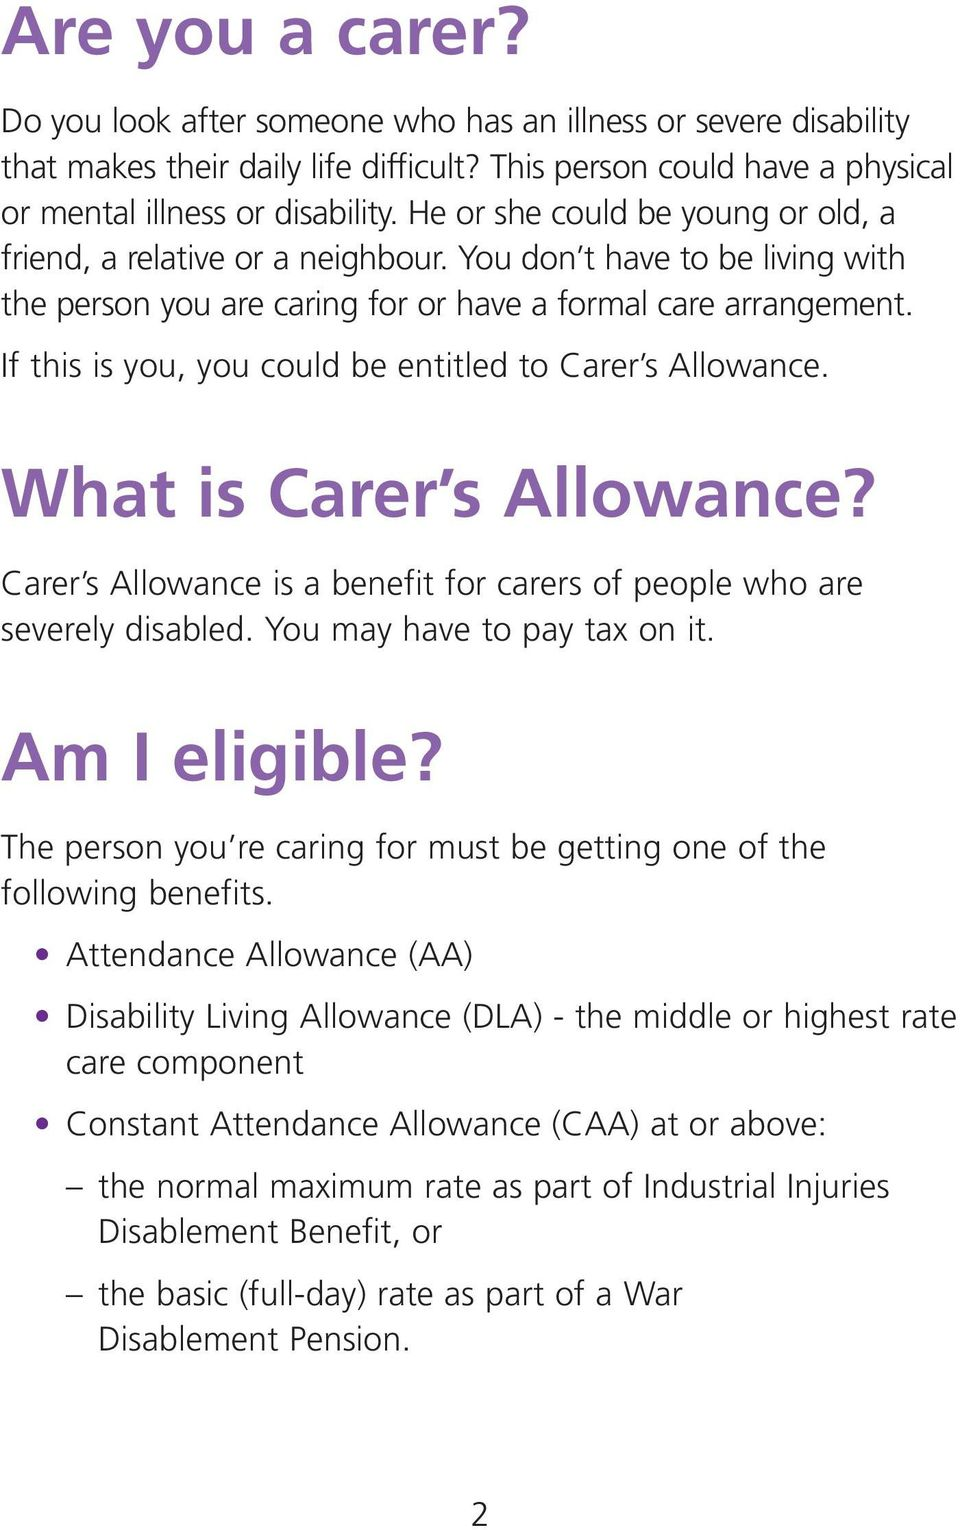 If this is you, you could be entitled to Carer s Allowance. What is Carer s Allowance? Carer s Allowance is a benefit for carers of people who are severely disabled. You may have to pay tax on it.